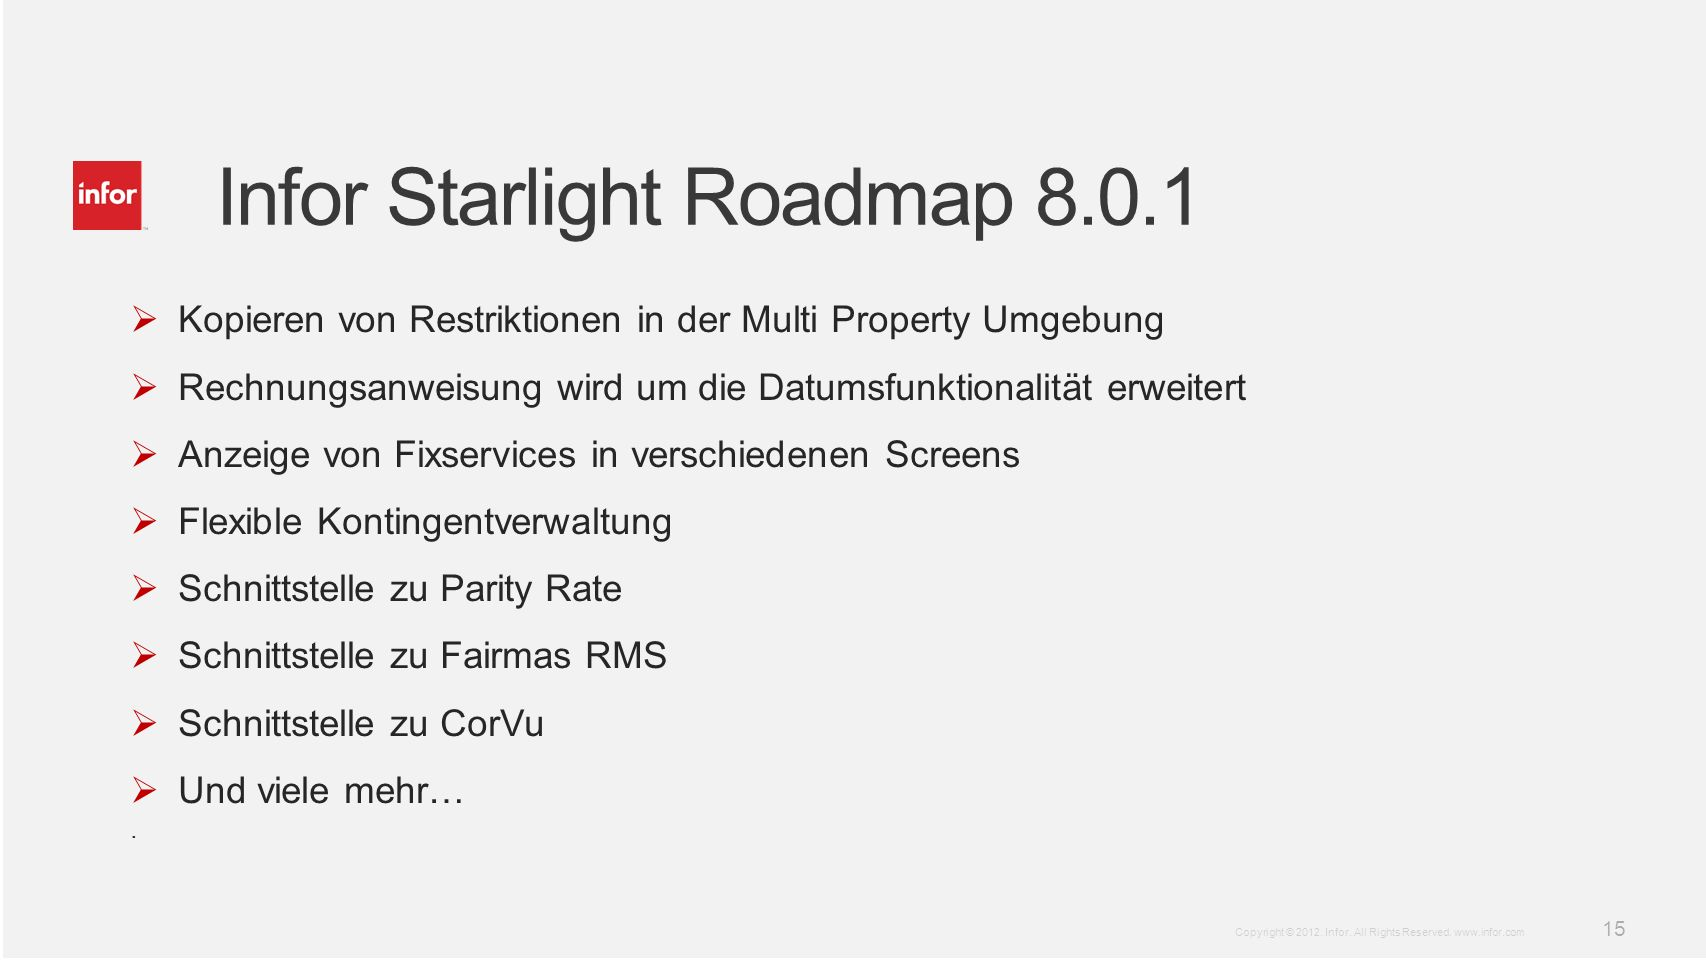 Infor Starlight Roadmap 8.0.1